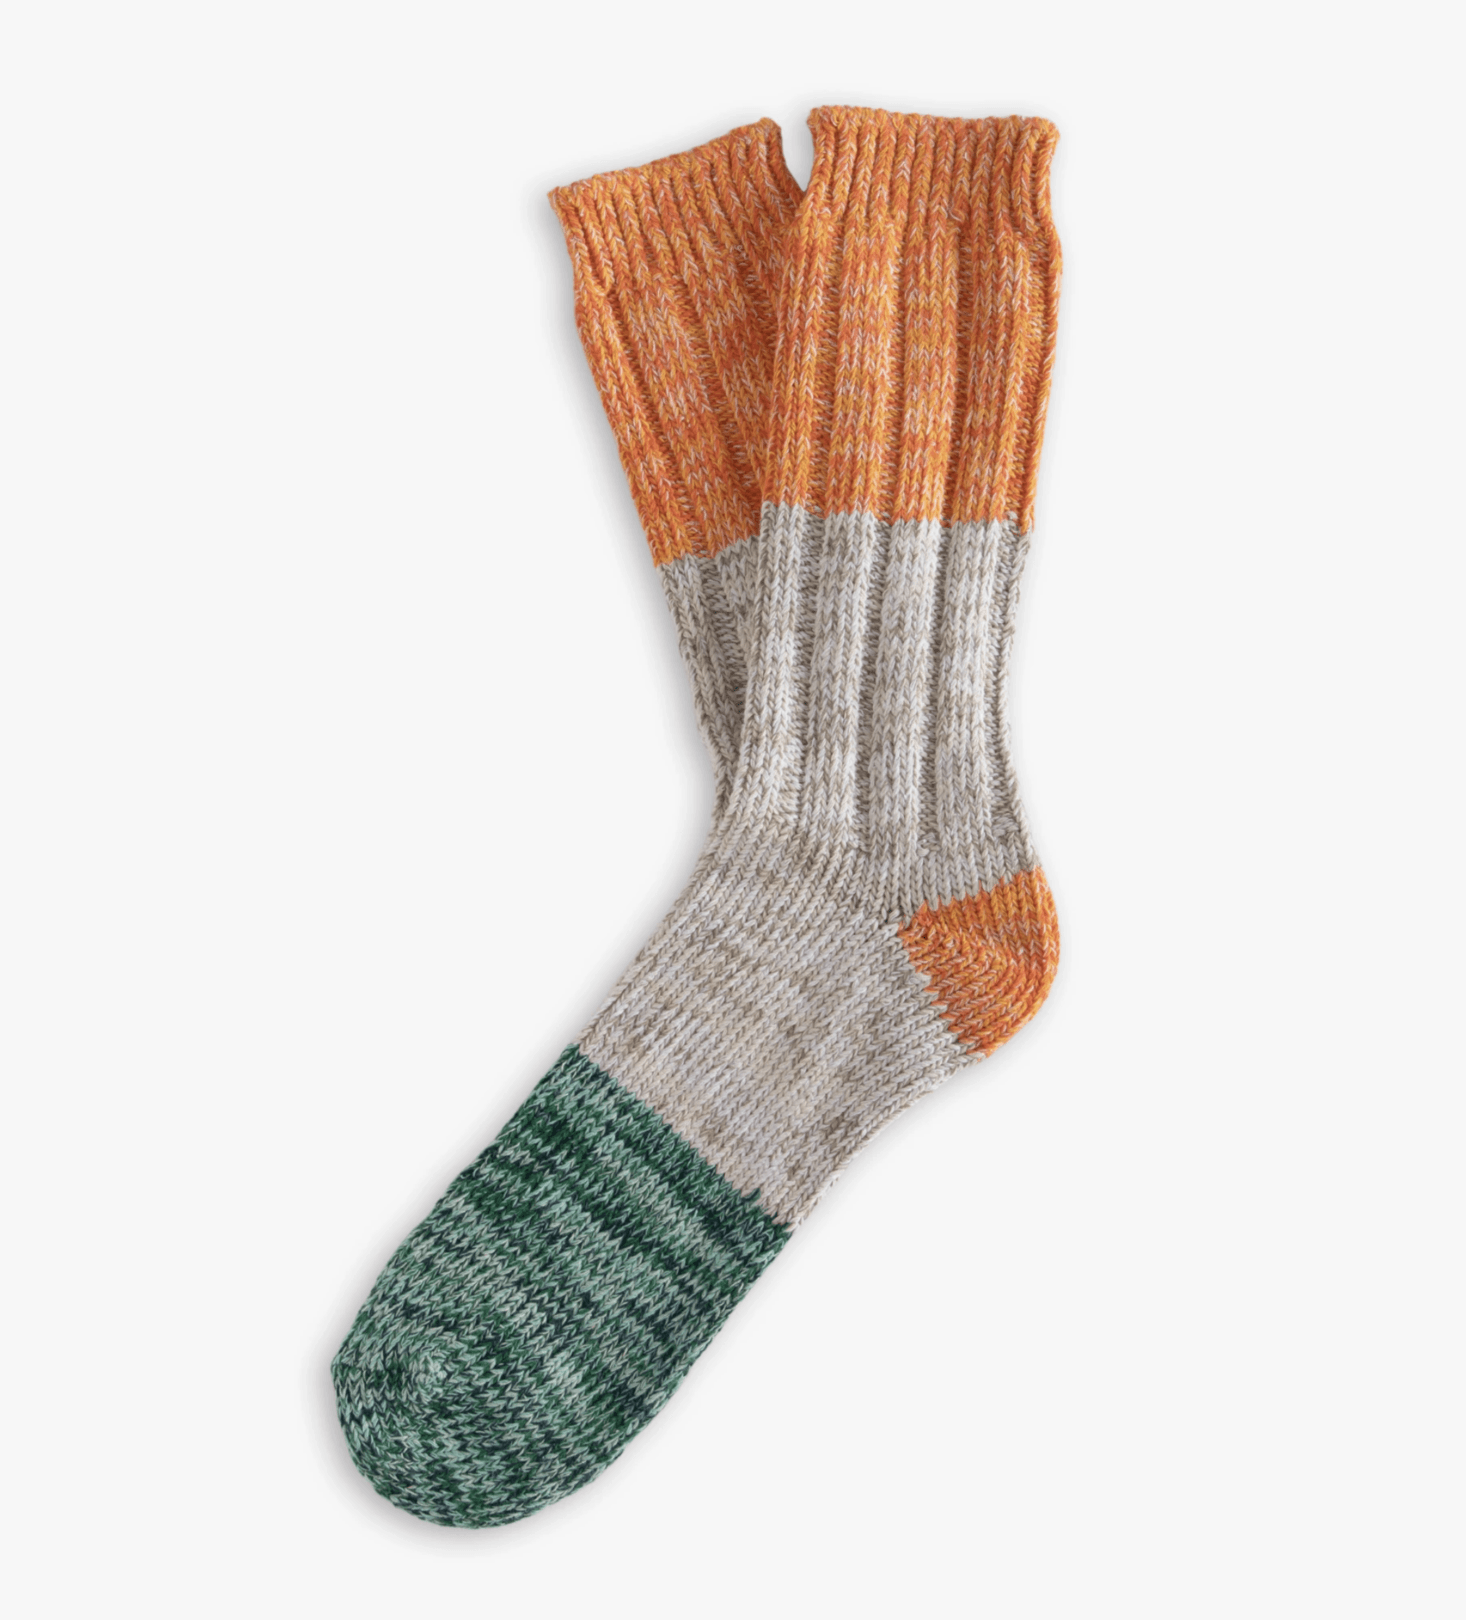 The Charlie Collection of cotton-blend socks by Thunders Love is also made from recycled yarn. The unisex designs are € directly from Thunders Love of northwest Spain. Mr. Porter offers Thunders Love Socks for $.